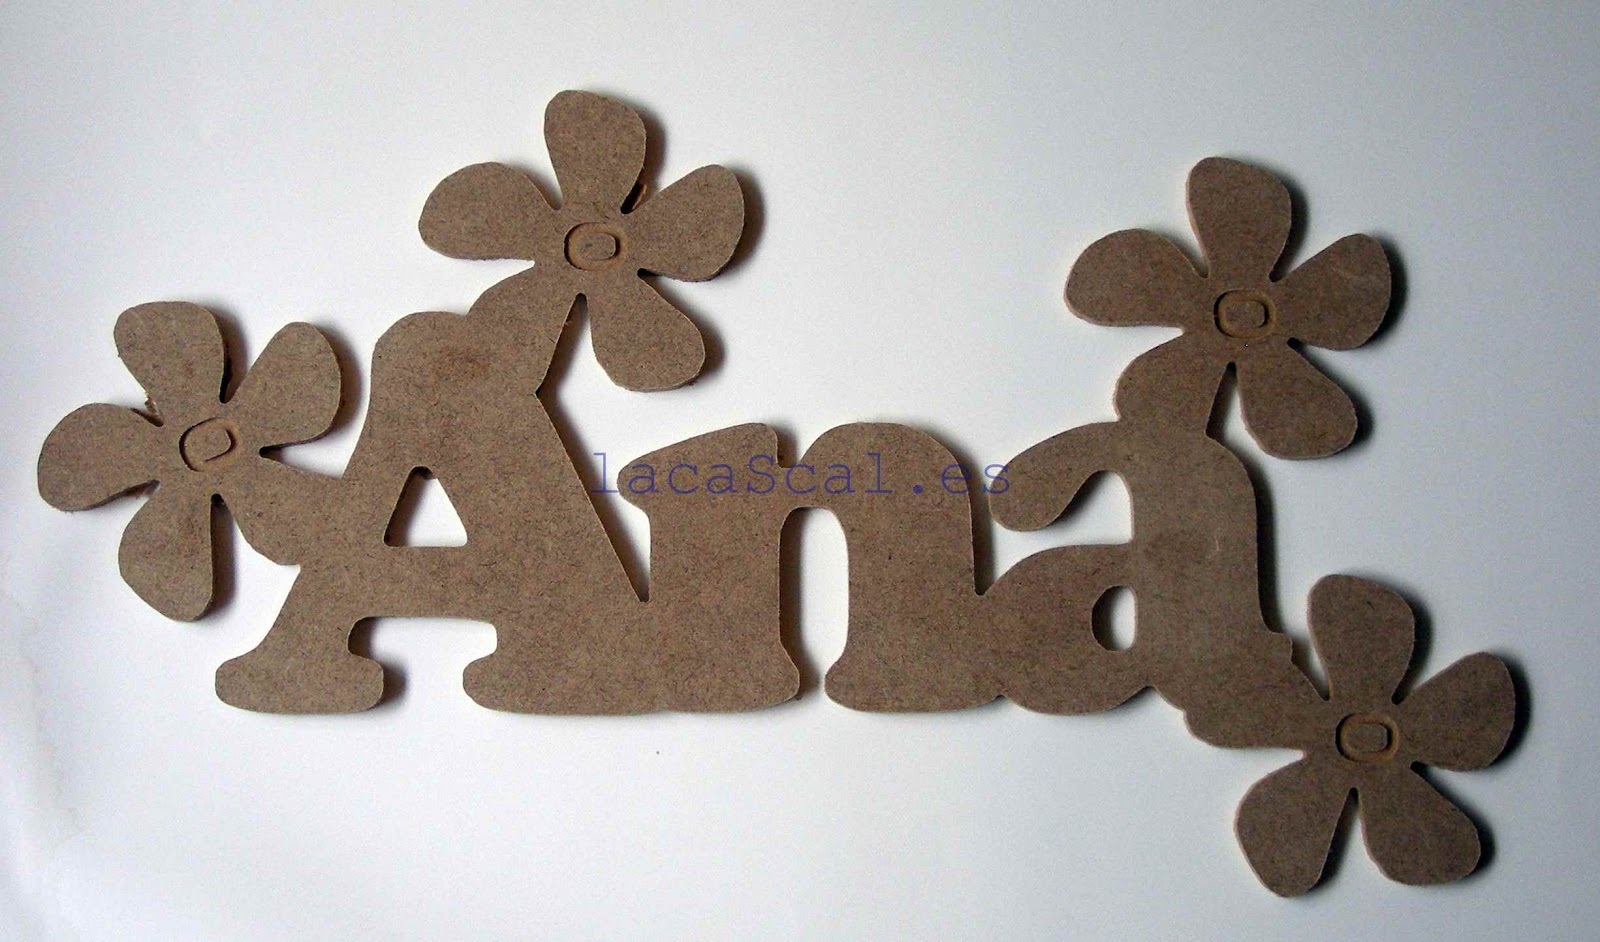 Decoraci n infantil manualidades en madera estanterias for Decoracion baules madera